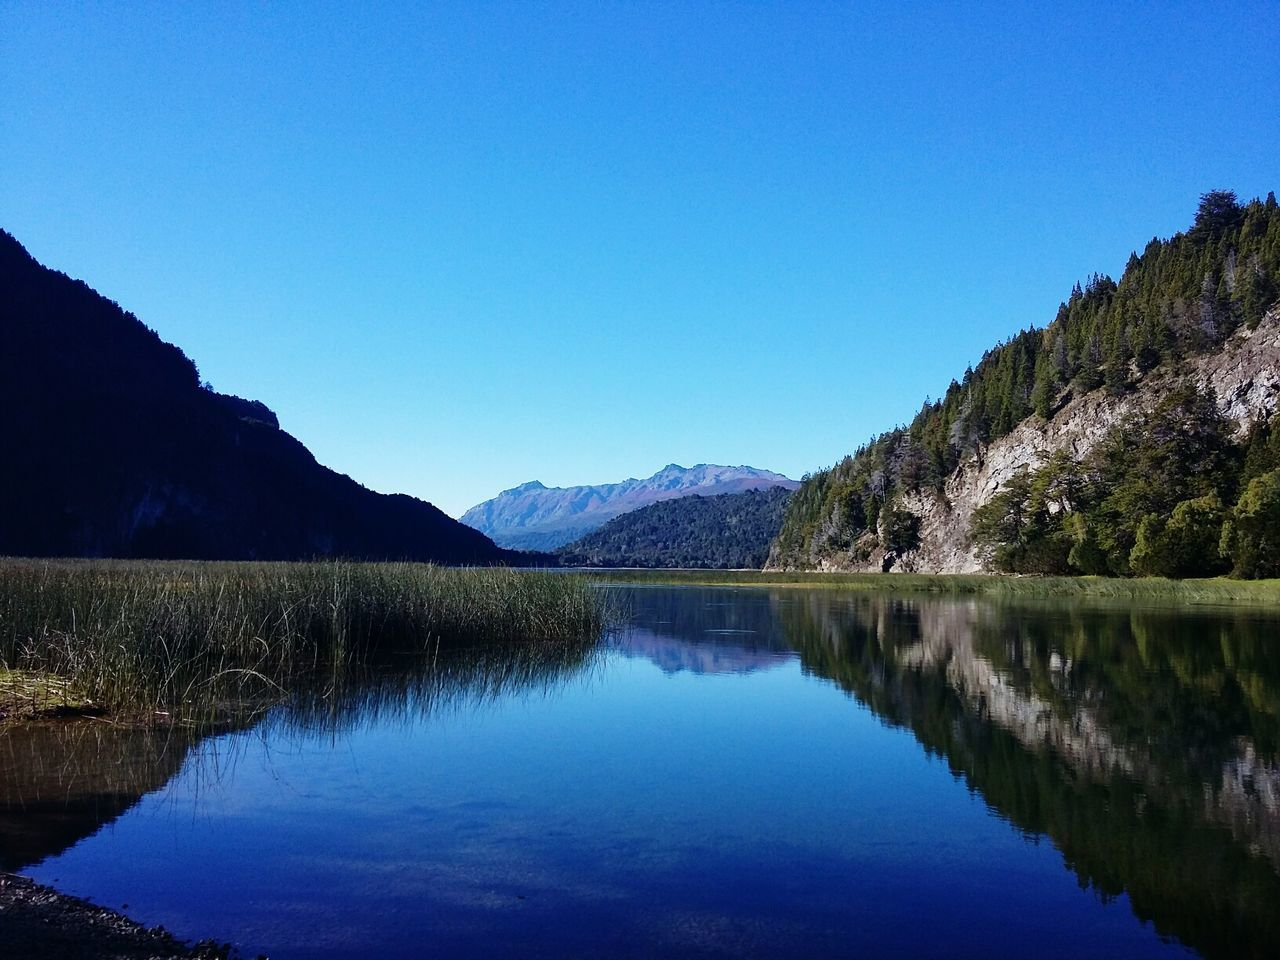 reflection, blue, tranquil scene, lake, tranquility, water, nature, mountain, clear sky, beauty in nature, scenics, copy space, waterfront, outdoors, no people, day, mountain range, symmetry, tree, sky